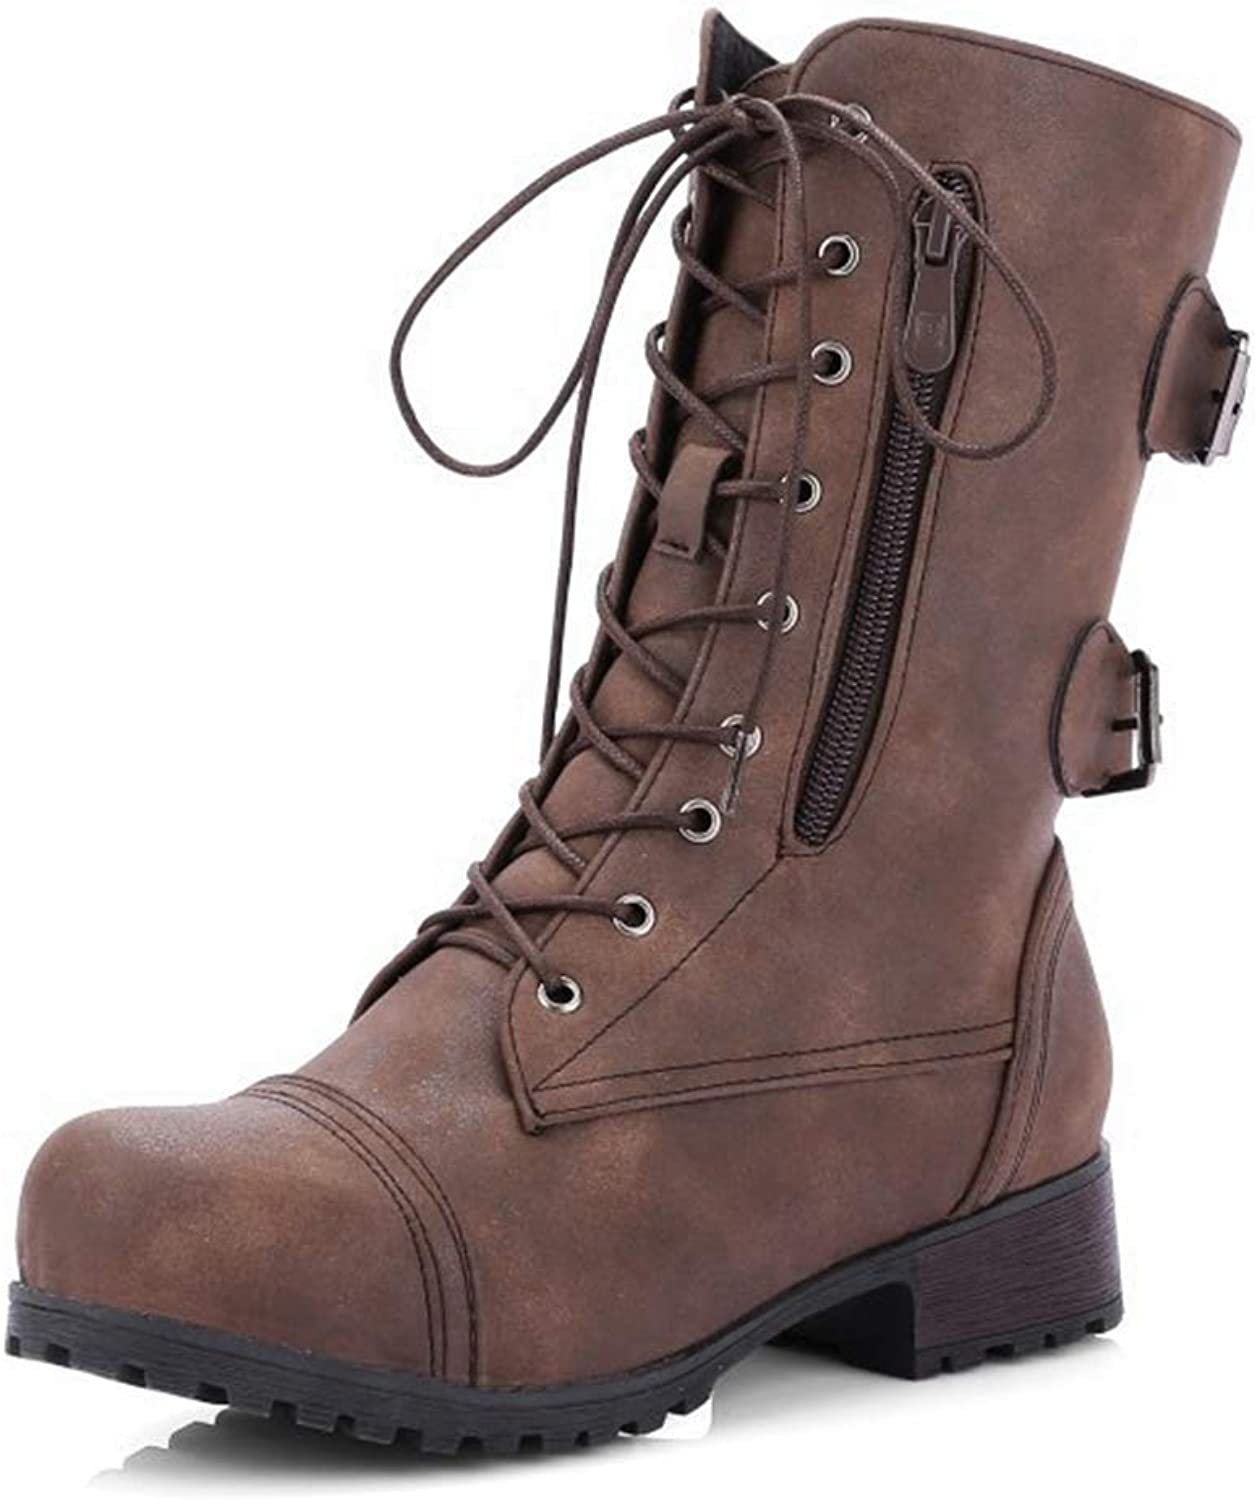 Women's Military Lace Up Mid-Calf Combat Boots Side Zipper Pocket Low Heel Winter shoes(Brown-9 M US)